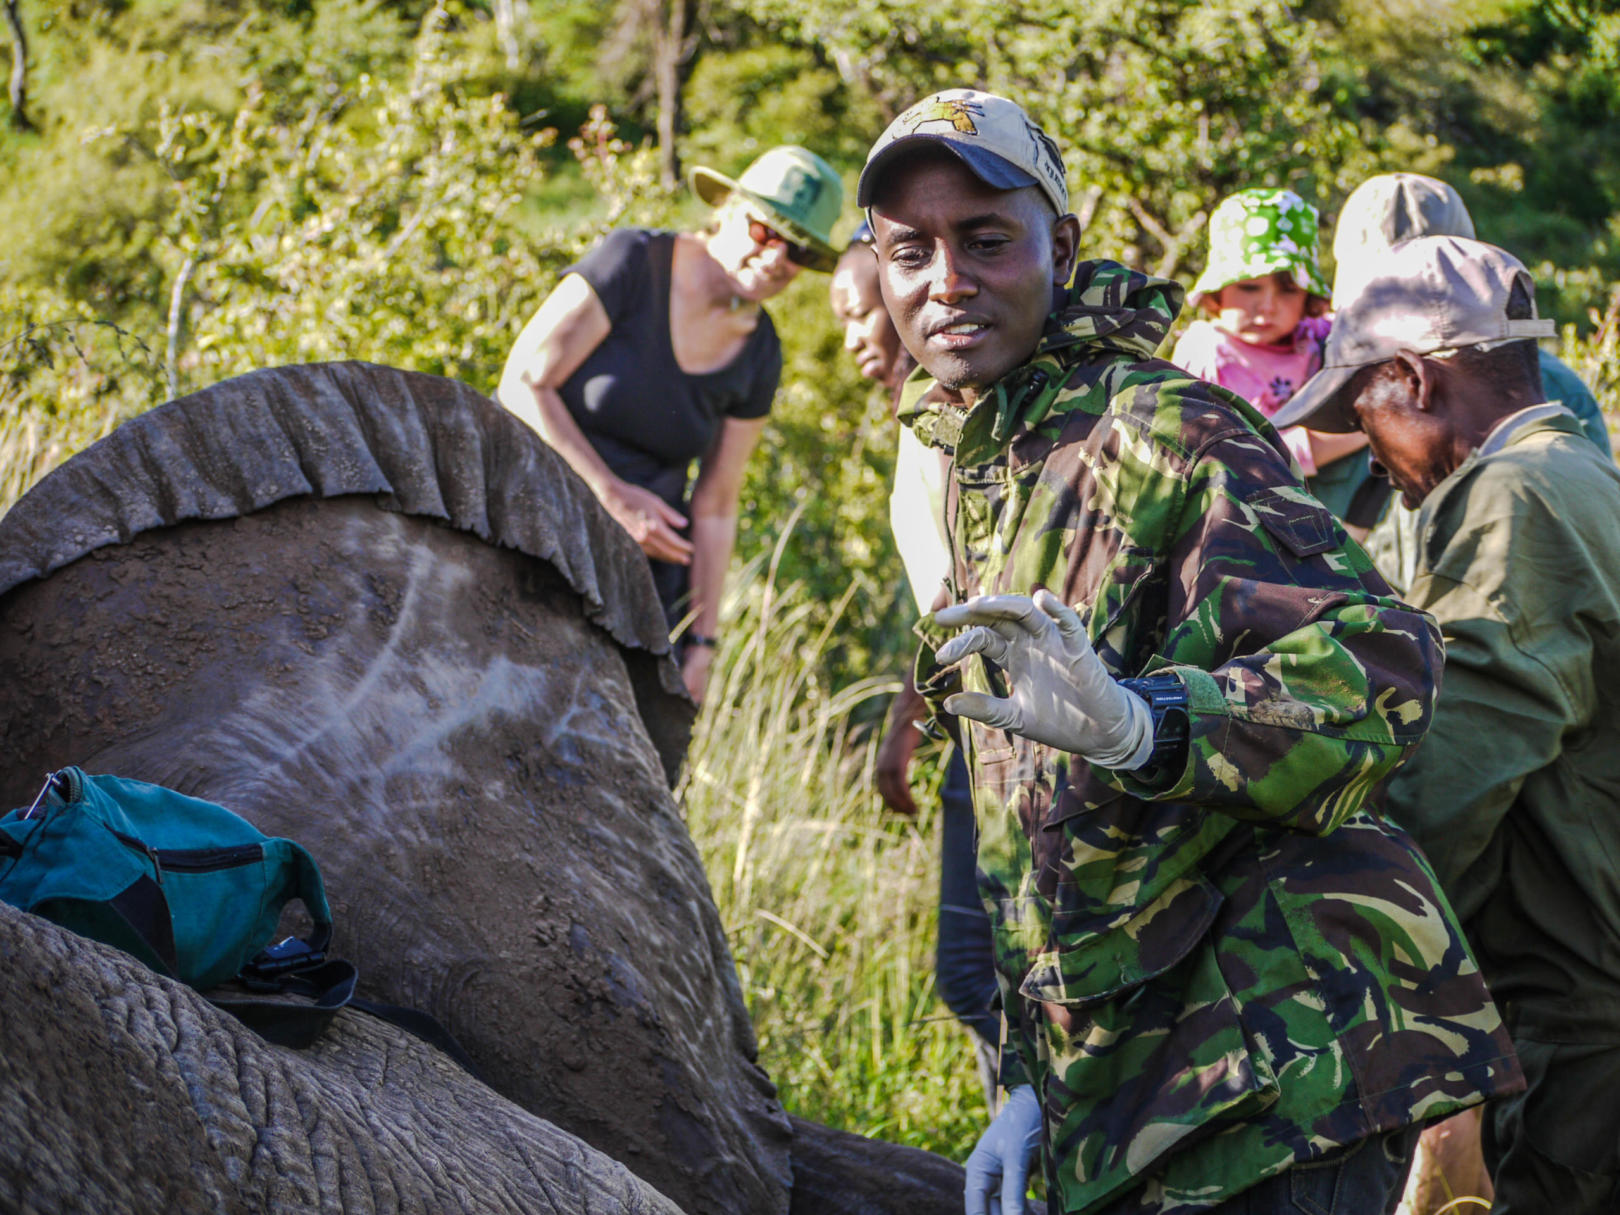 Kenya Wildlife Service vet treating injured elephant